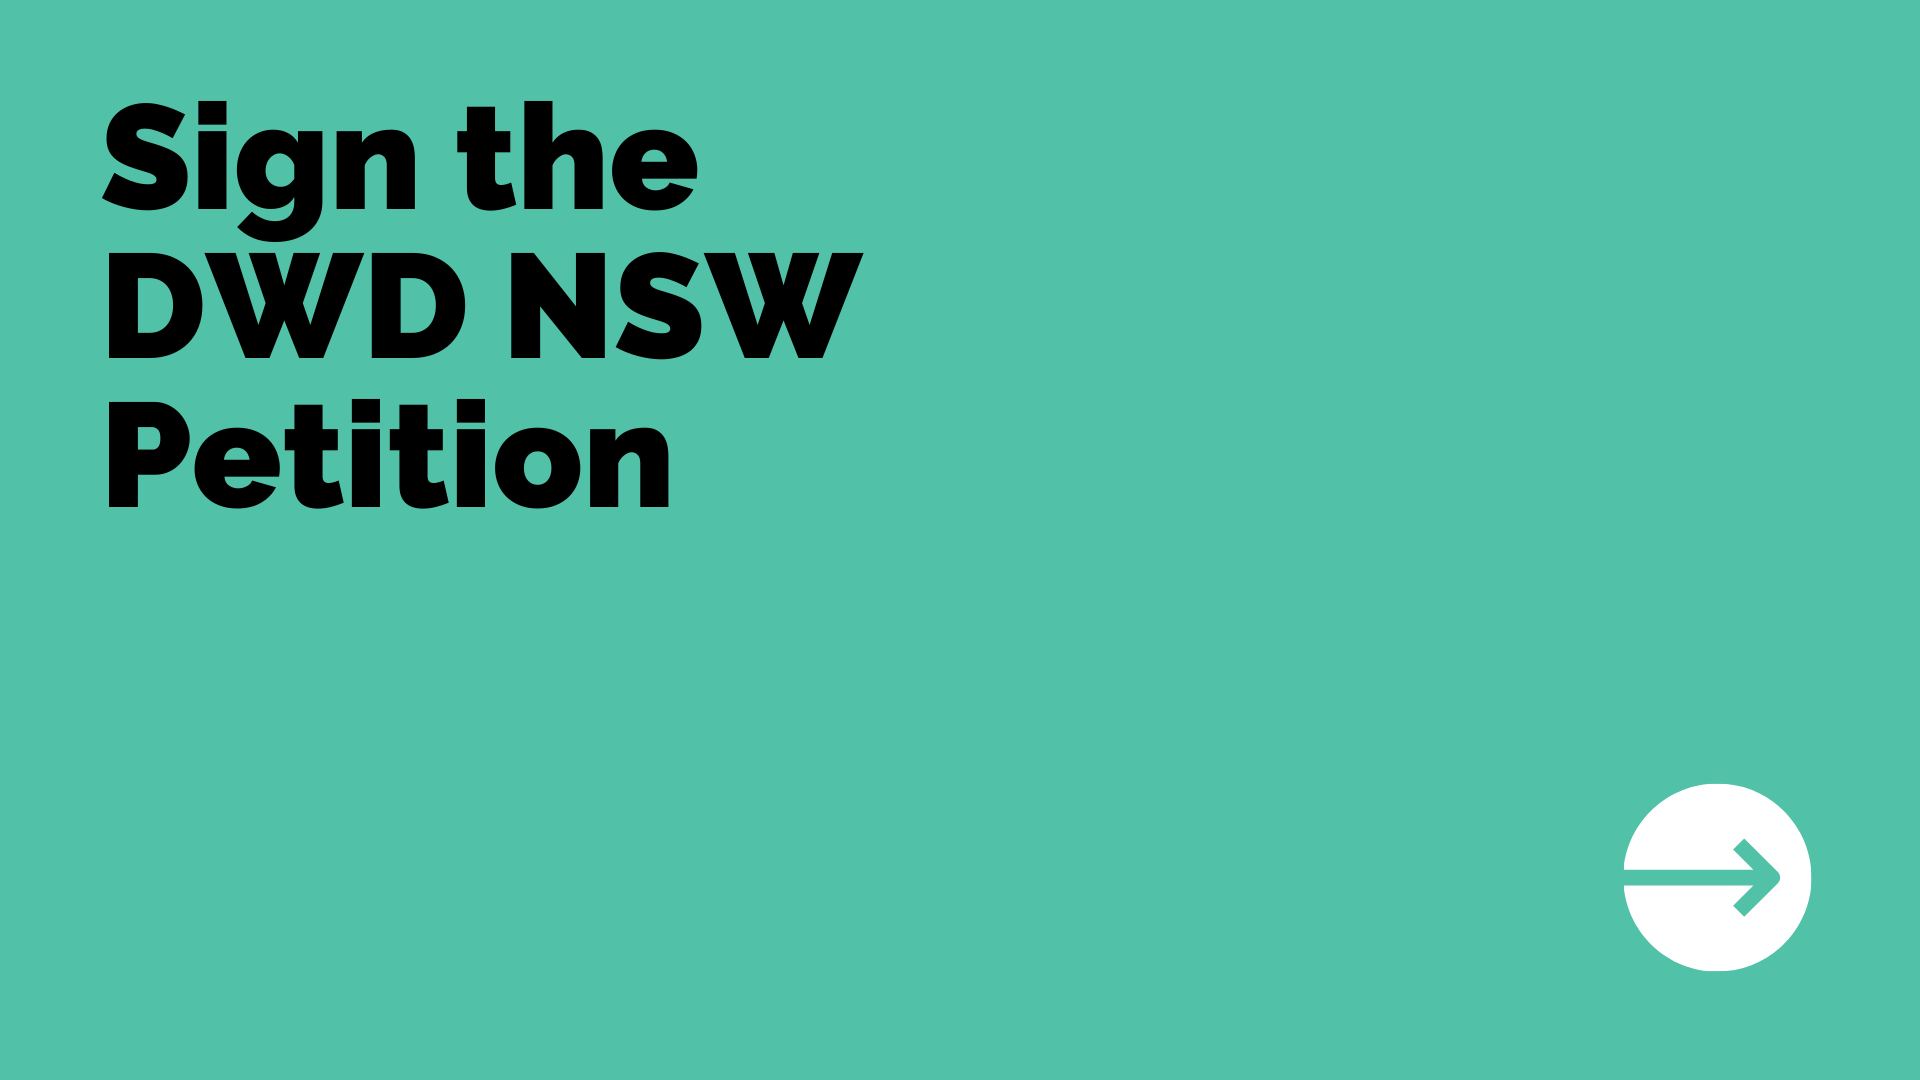 Sign the DWD NSW Petition here